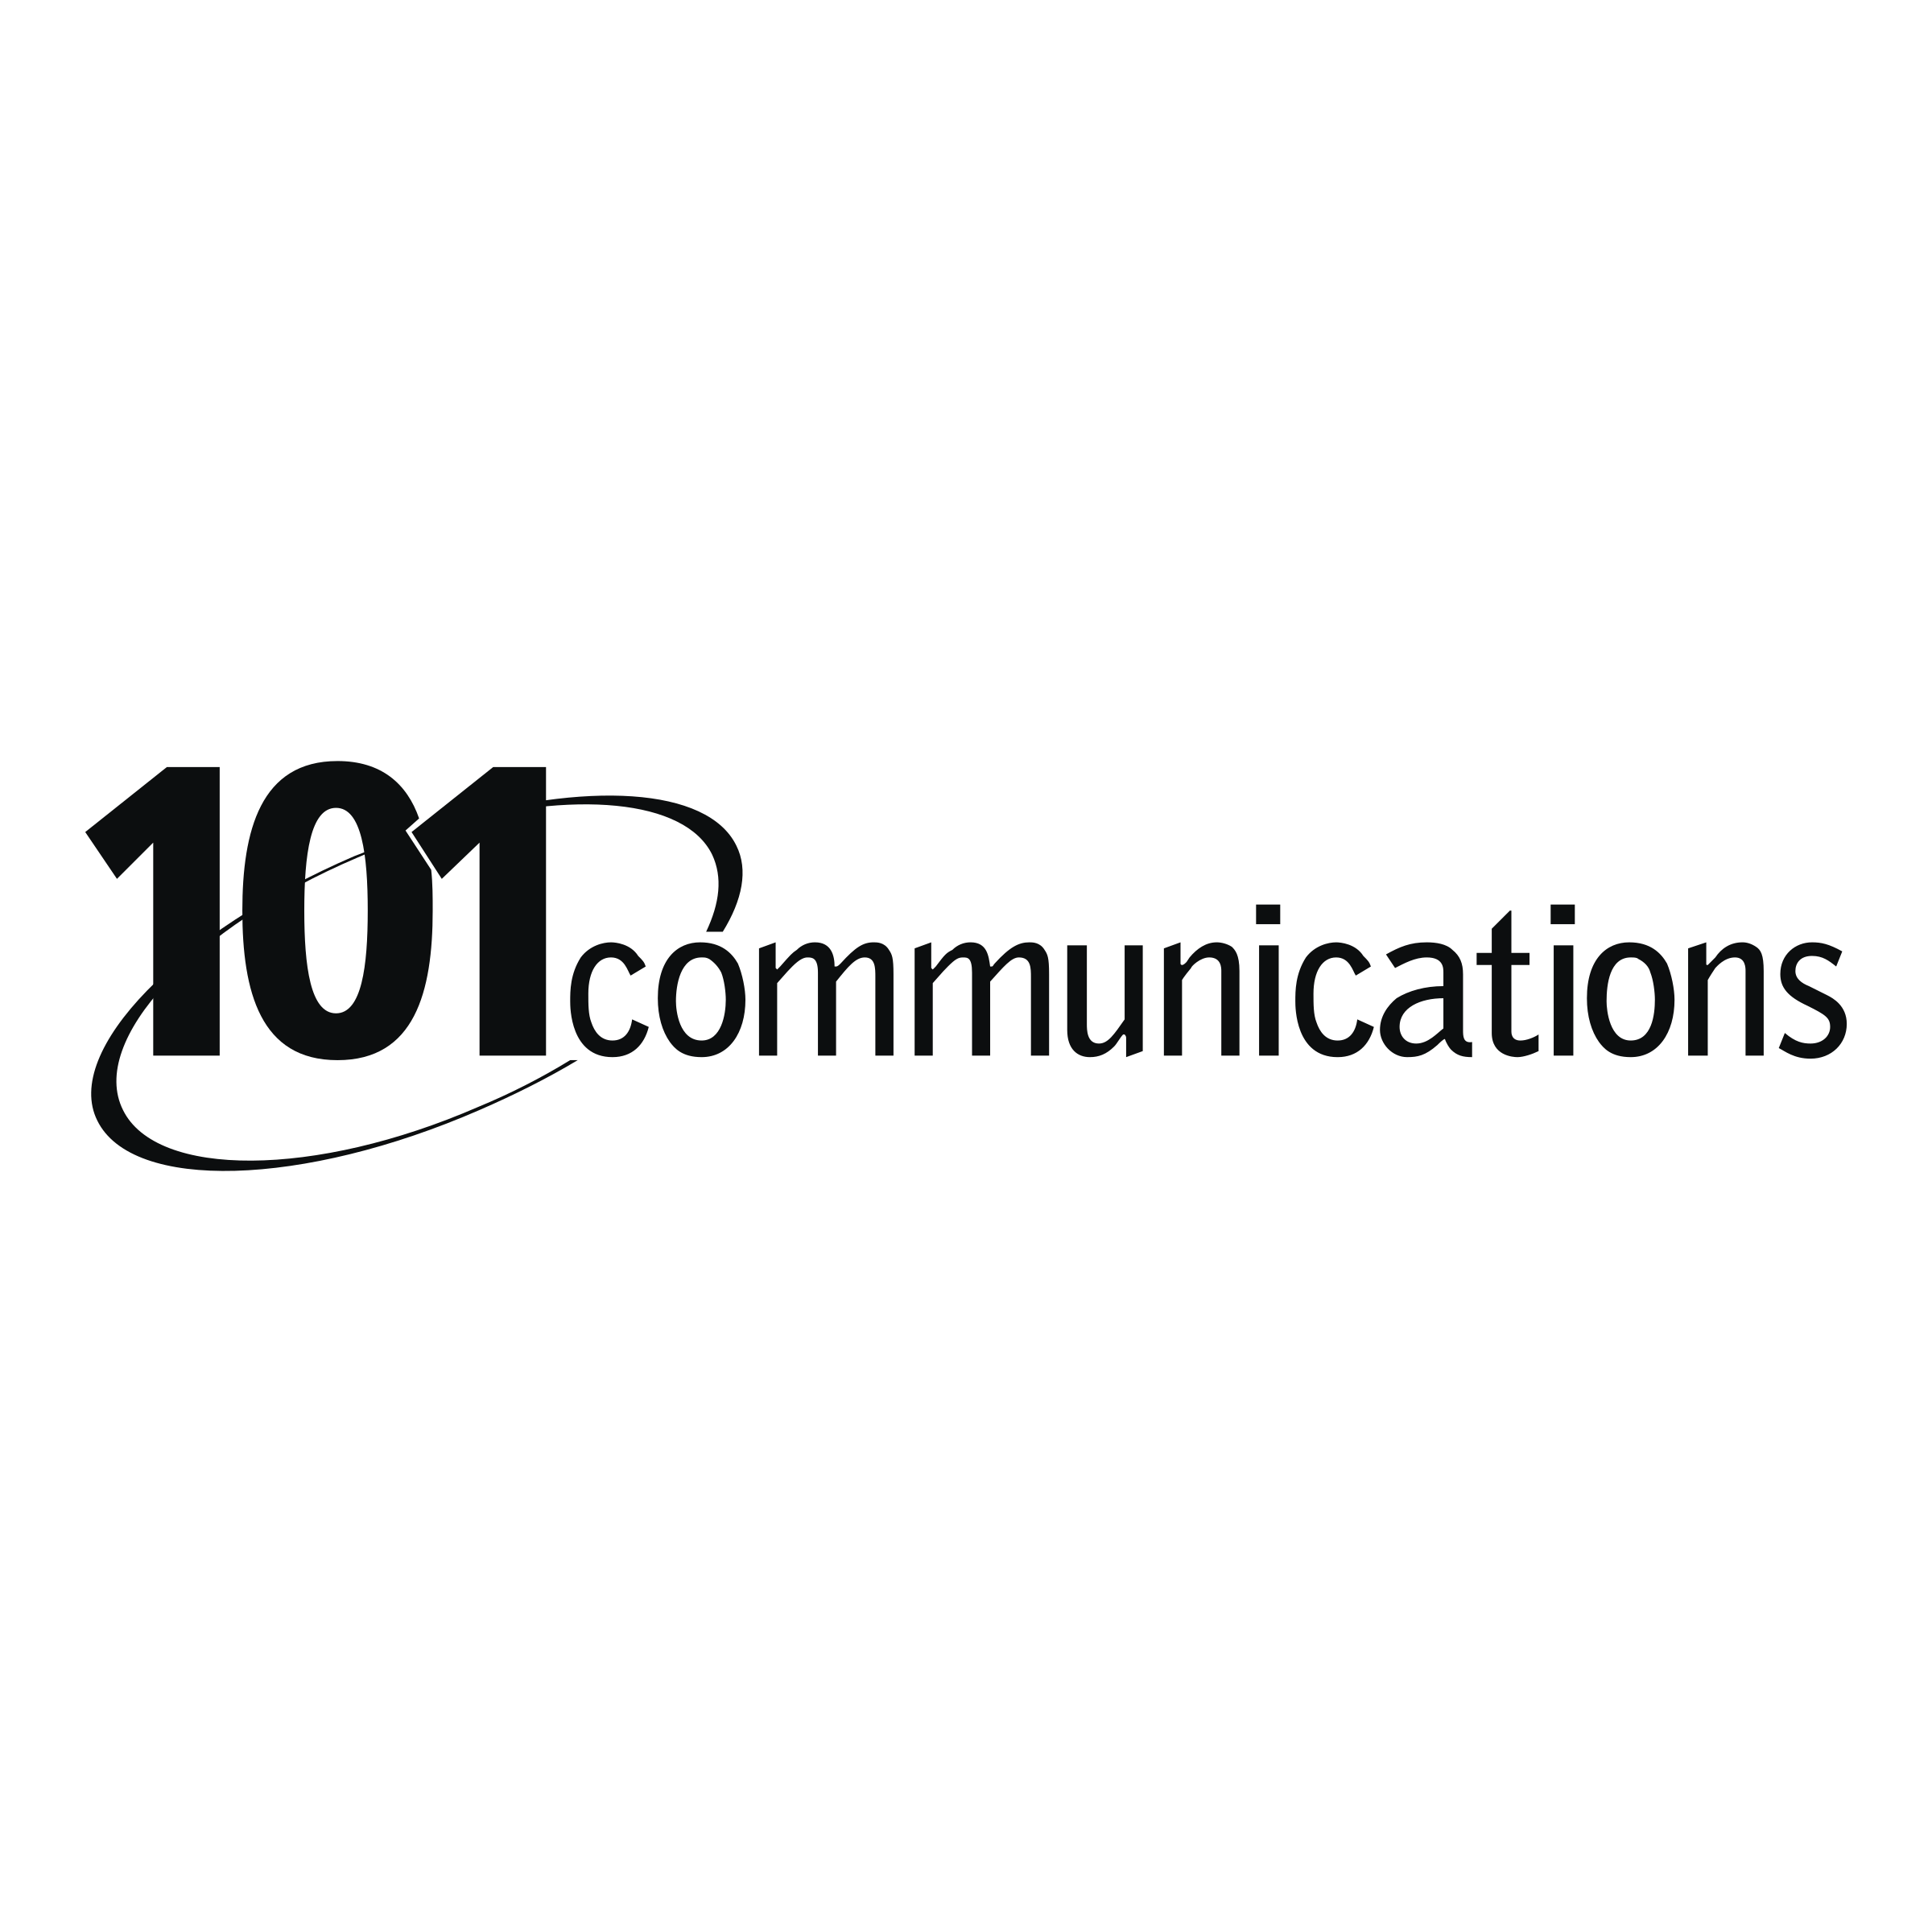 Vector communications. Logo png transparent